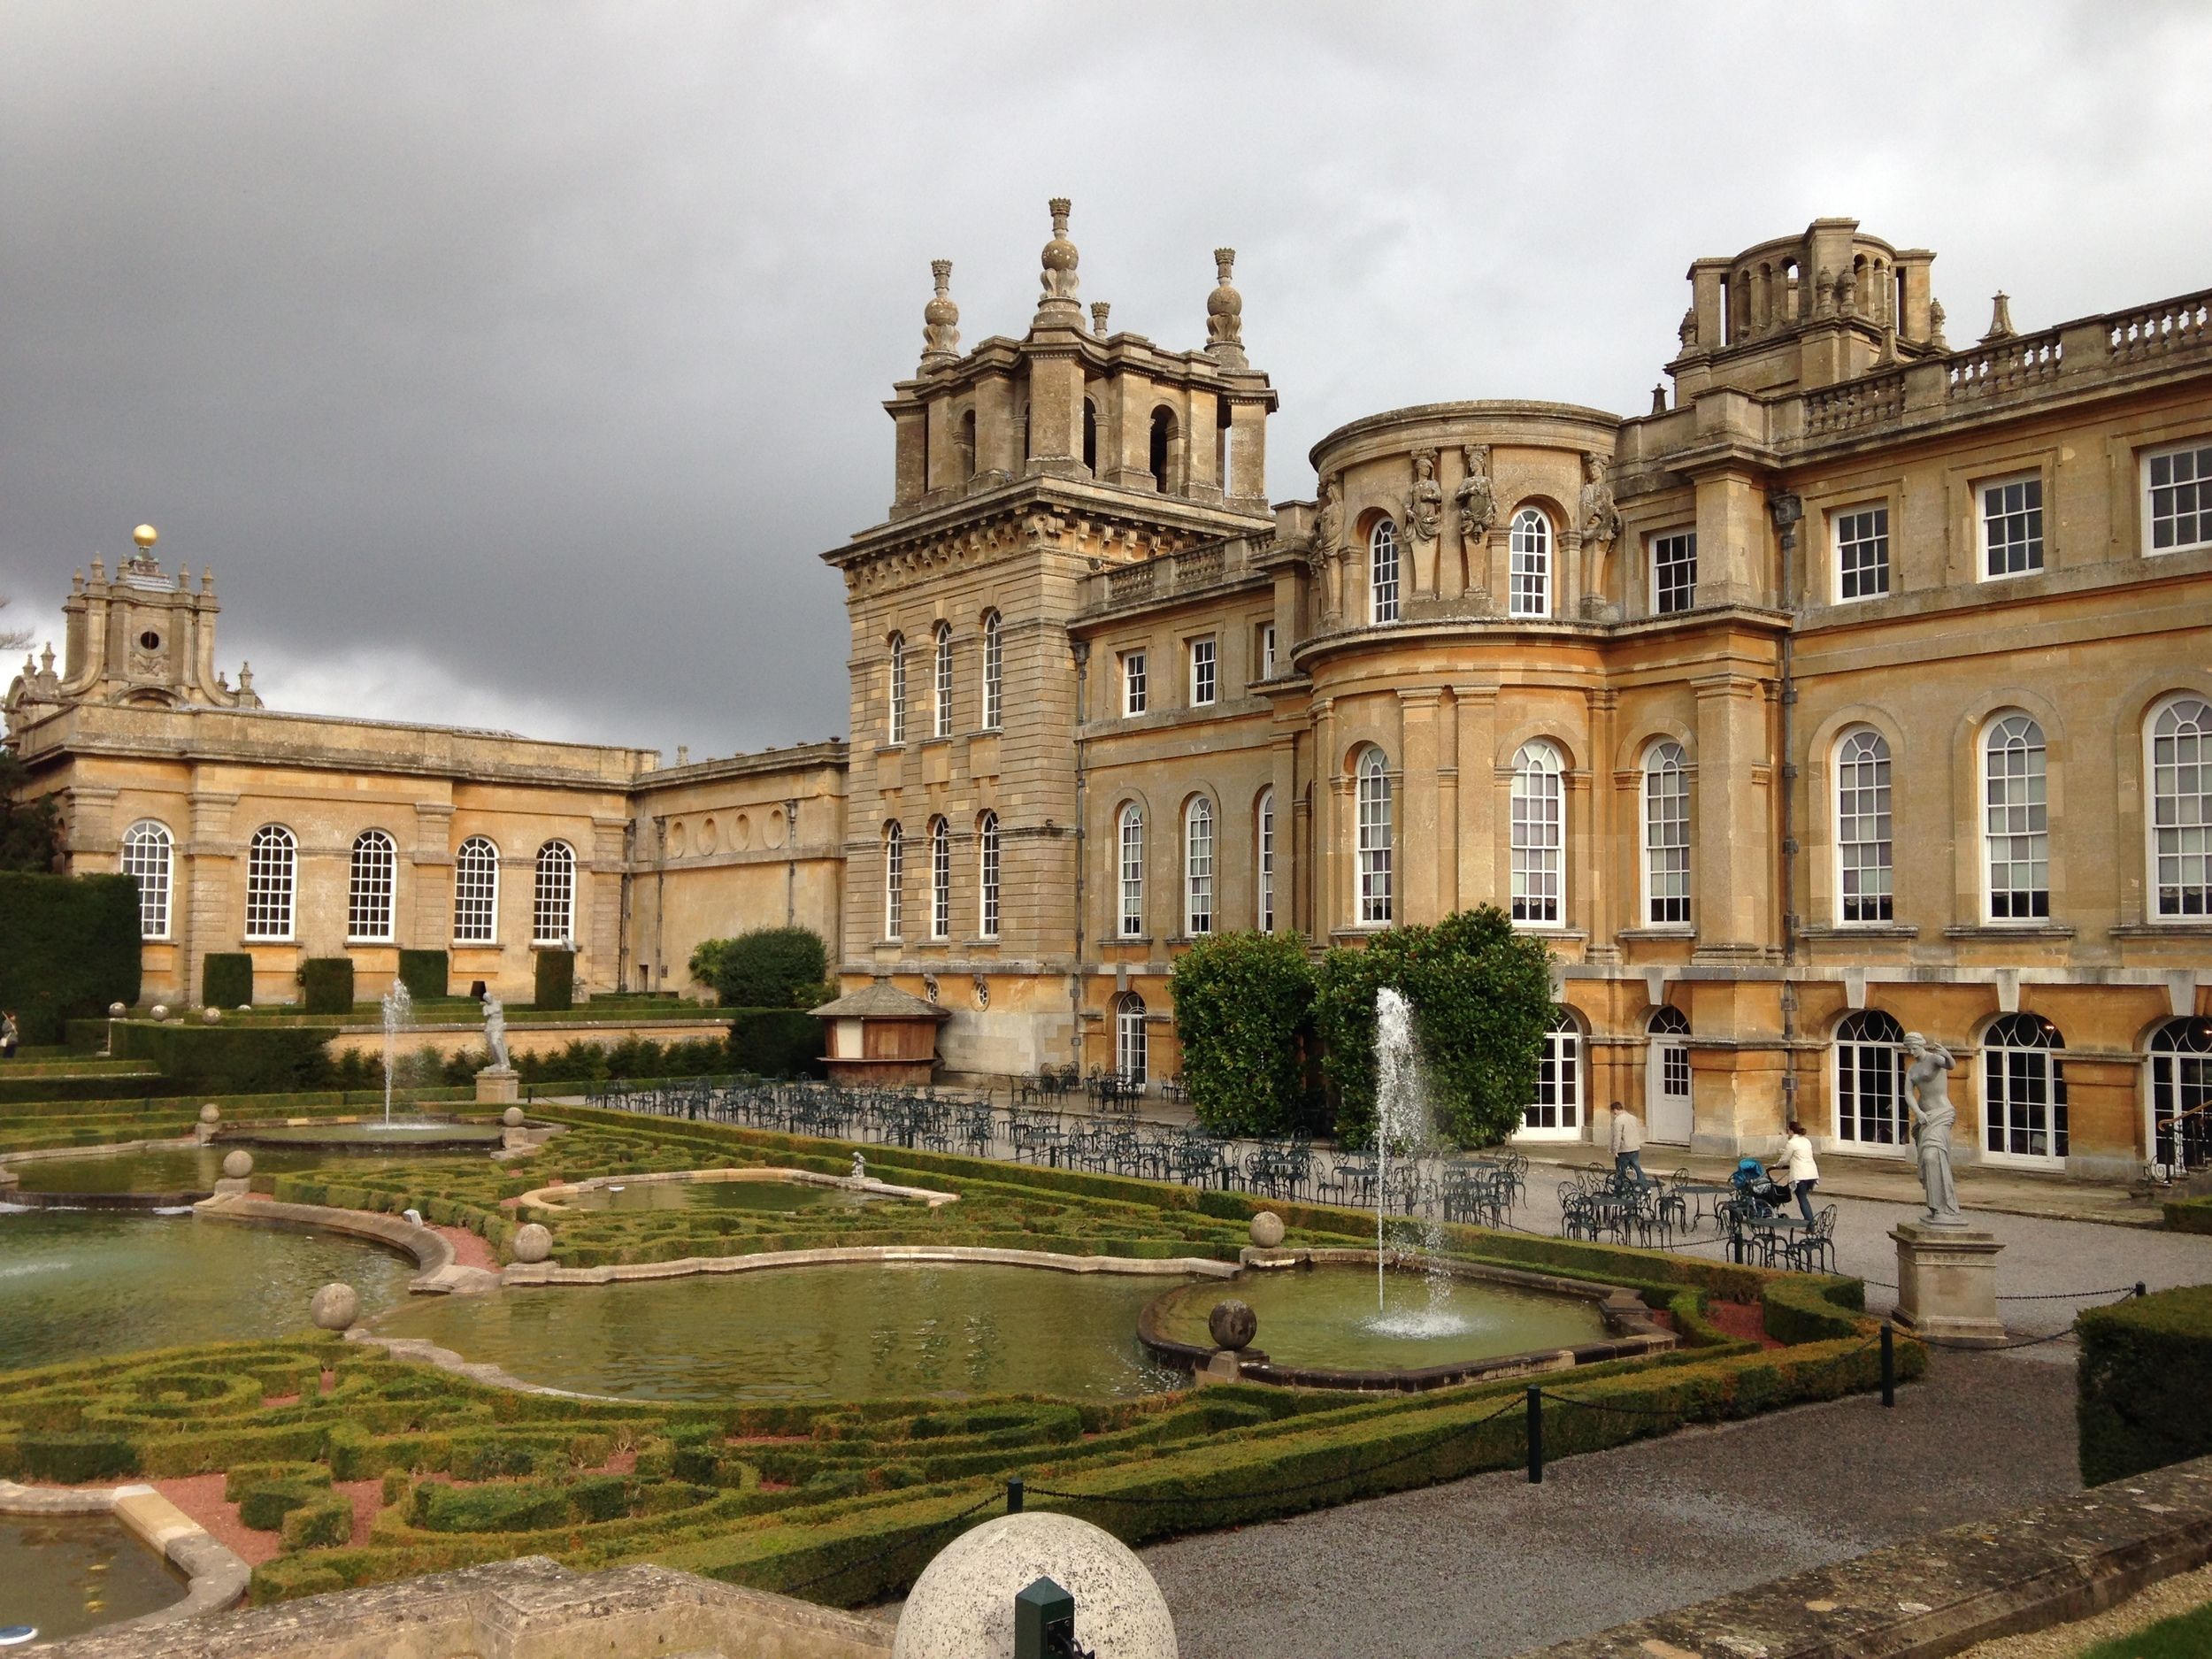 Blenheim Palace Birthday Party Nov 2014